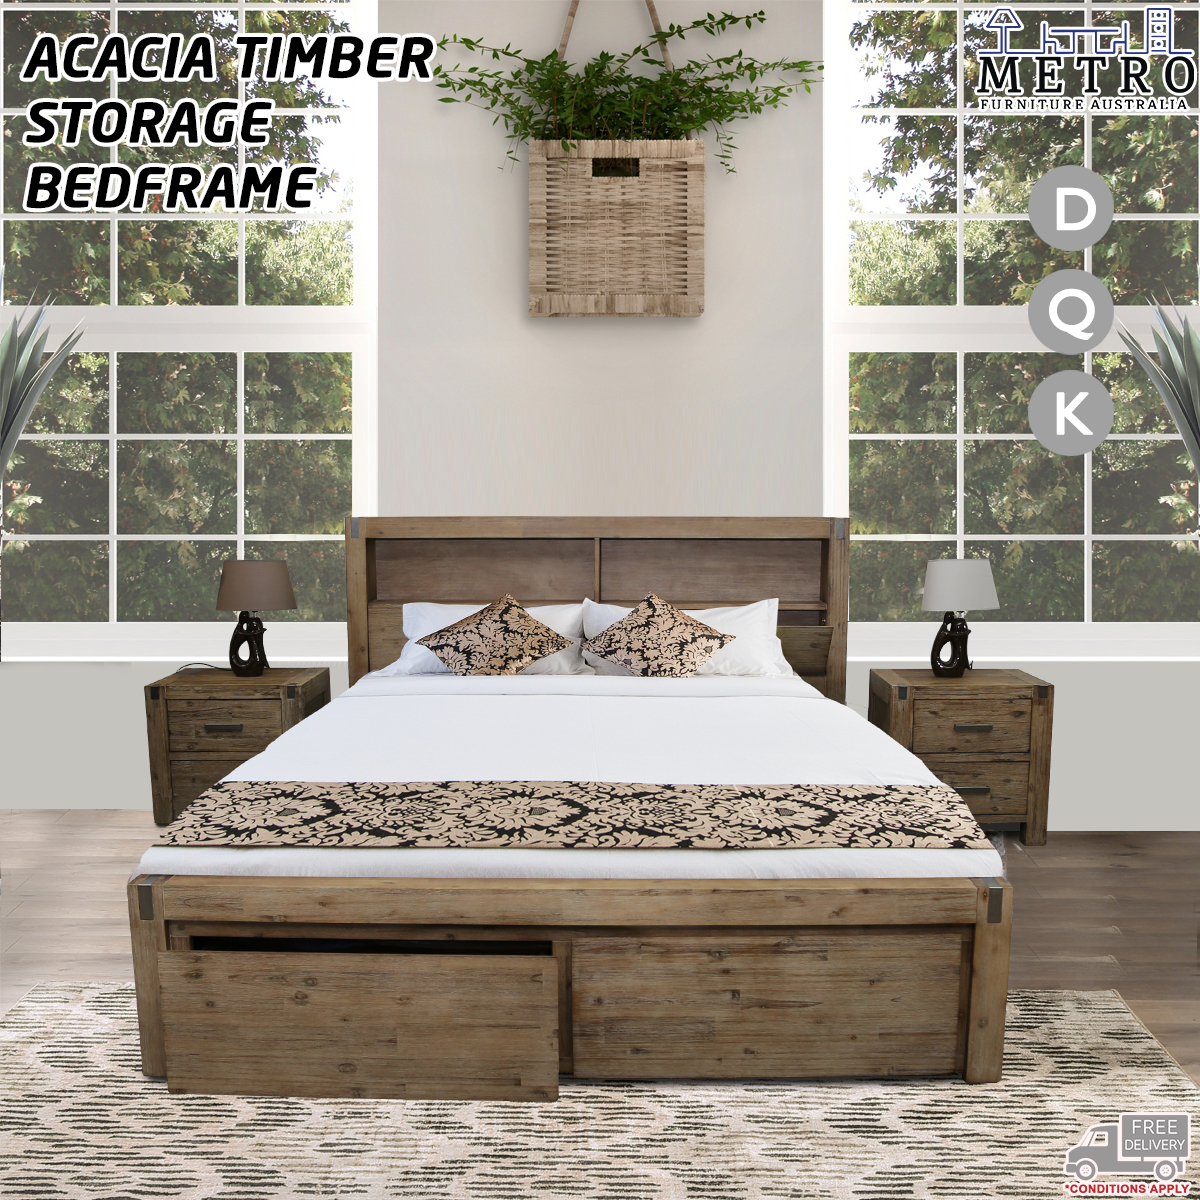 Details about Acacia Timber King Double Queen Bed Frame With  Storage,Espresso